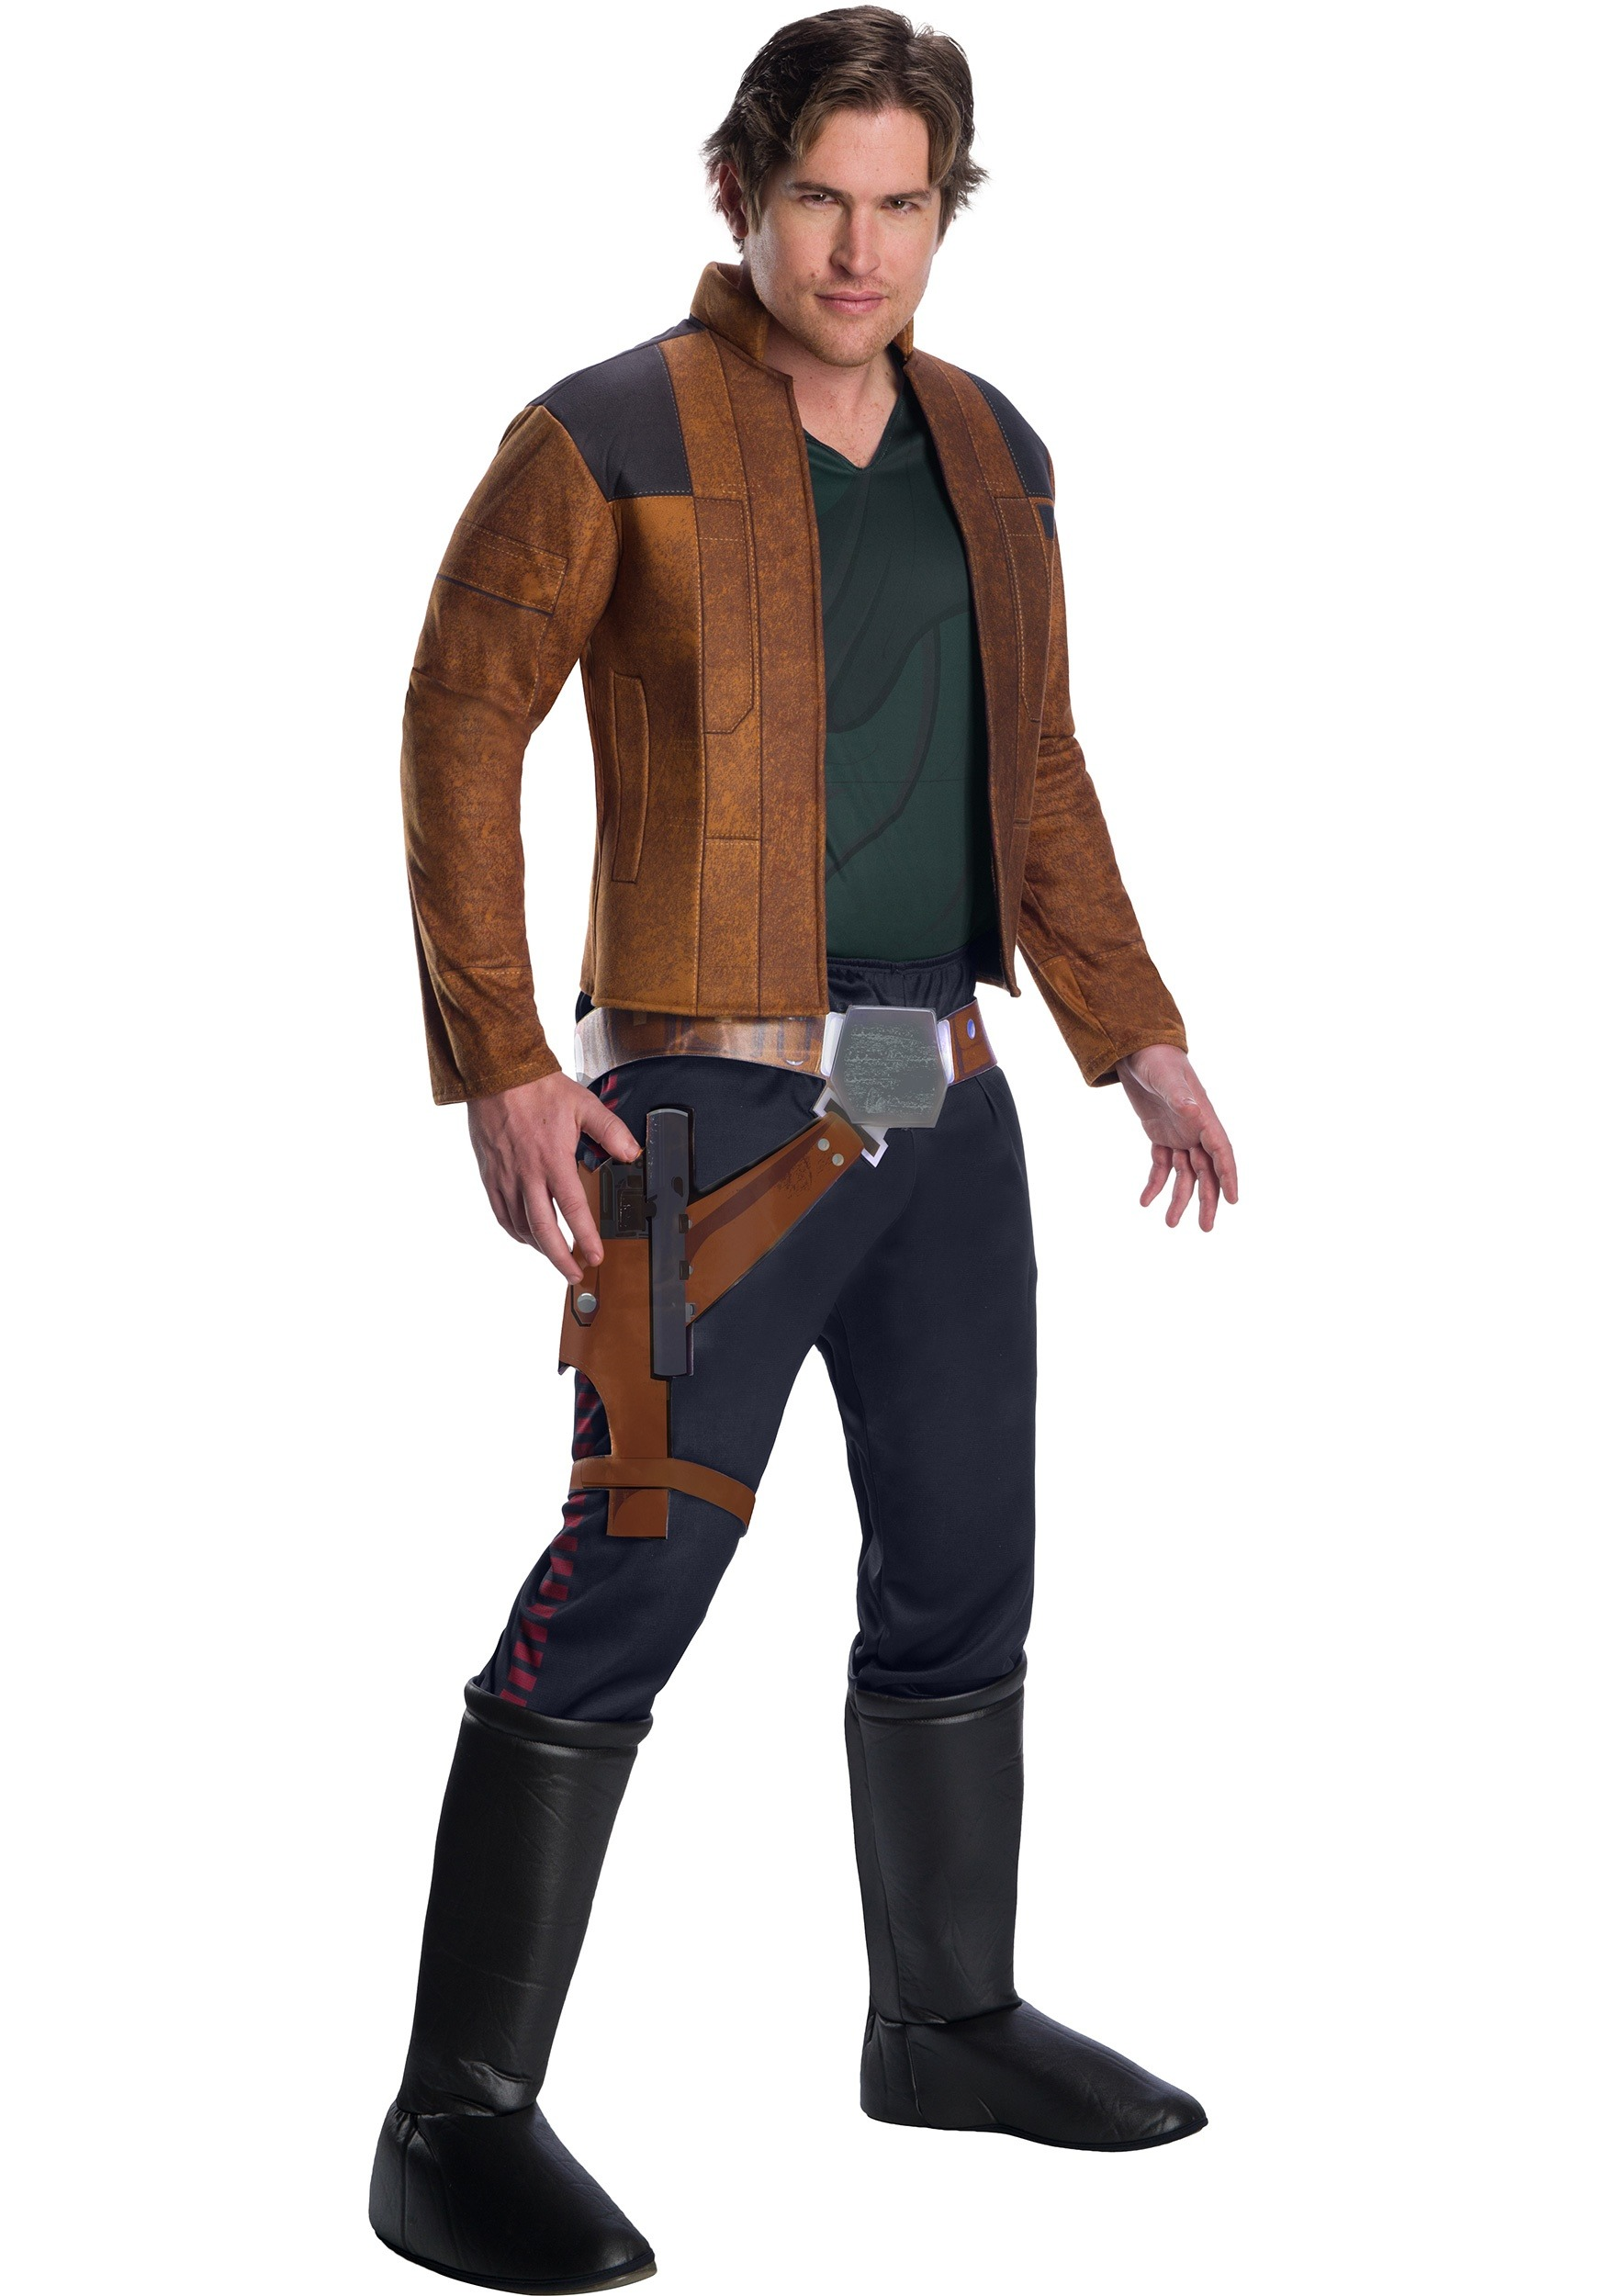 Star wars story solo hans solo costume for an adult - Vaisseau star wars han solo ...